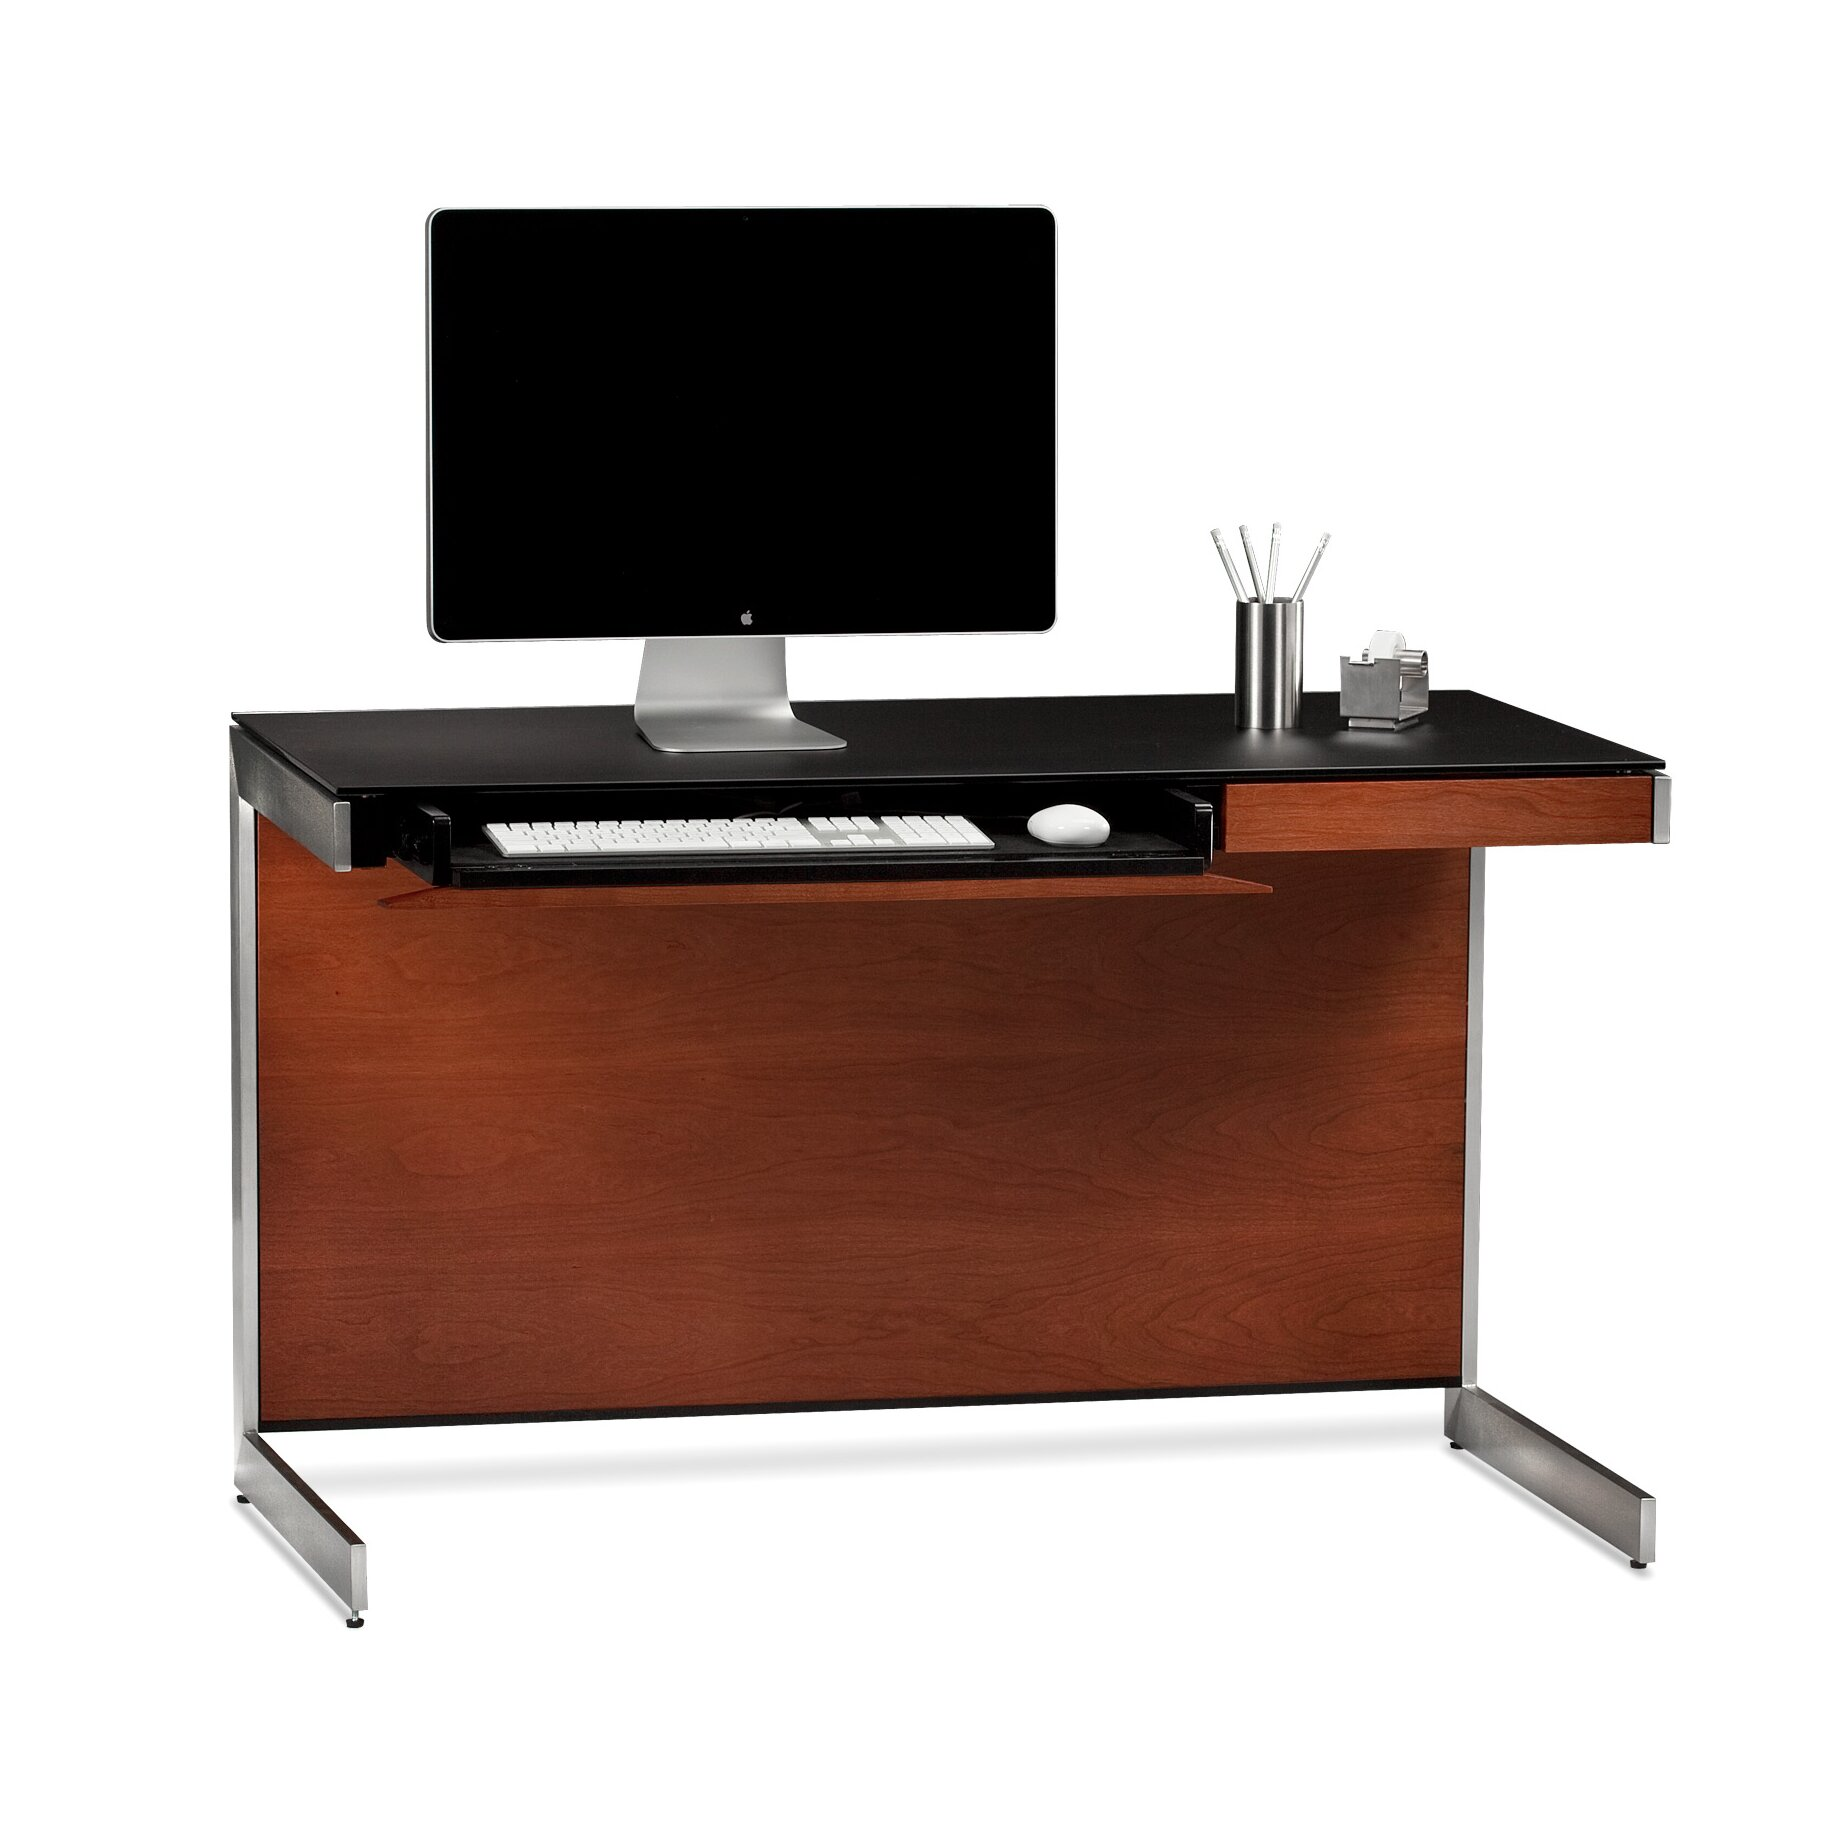 Brilliant 317 Amish Oak Office Furniture Made In USA Outlet Discount Furniture